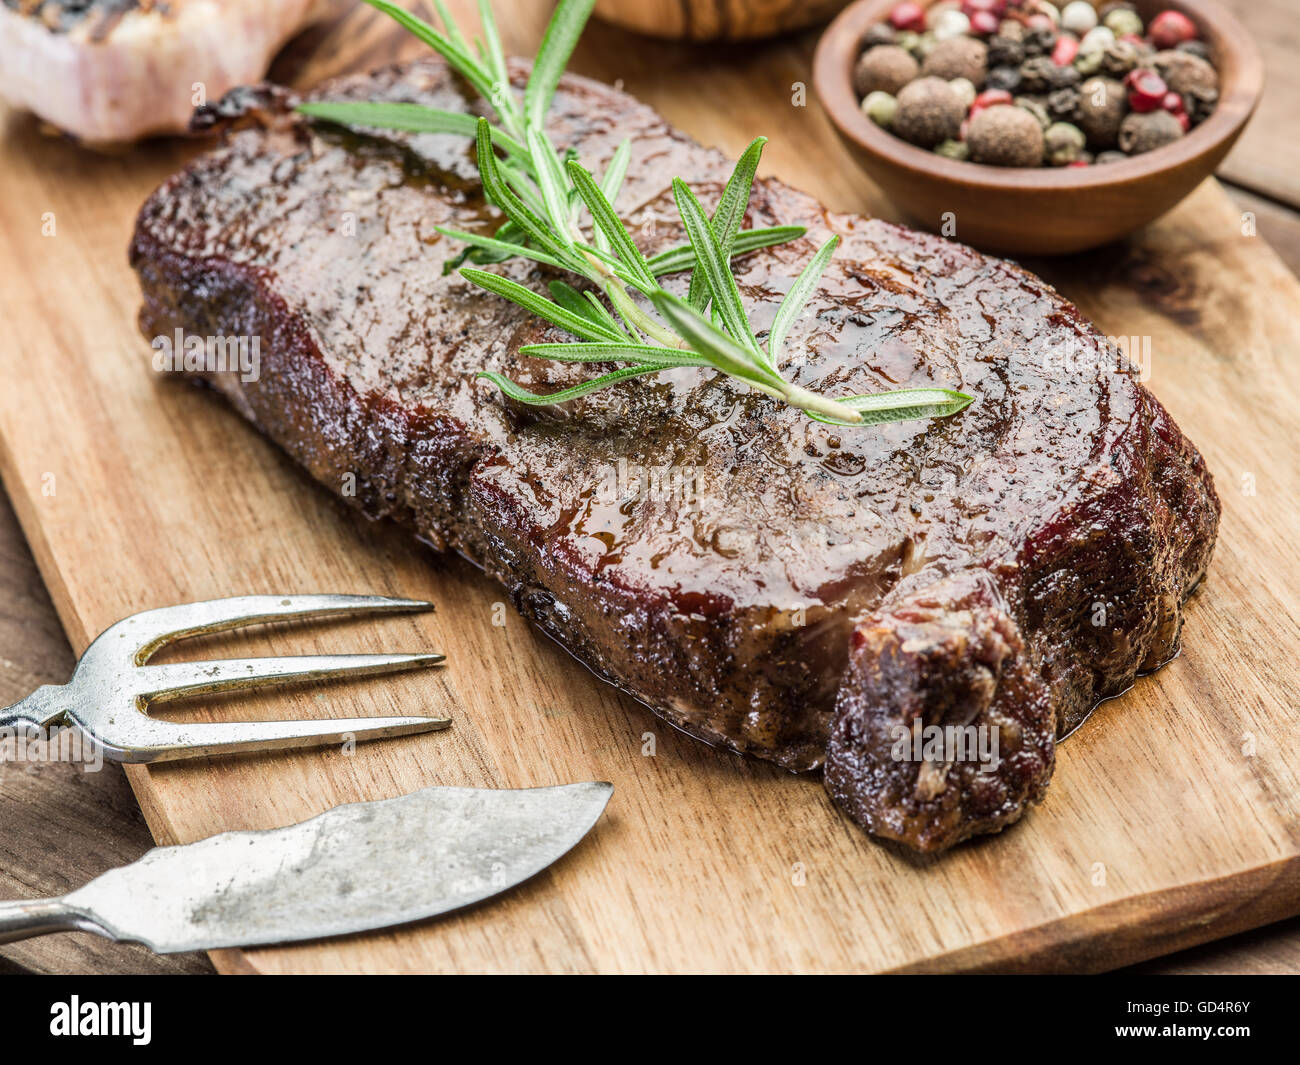 Steak Rib eye with spices on the wooden tray. - Stock Image